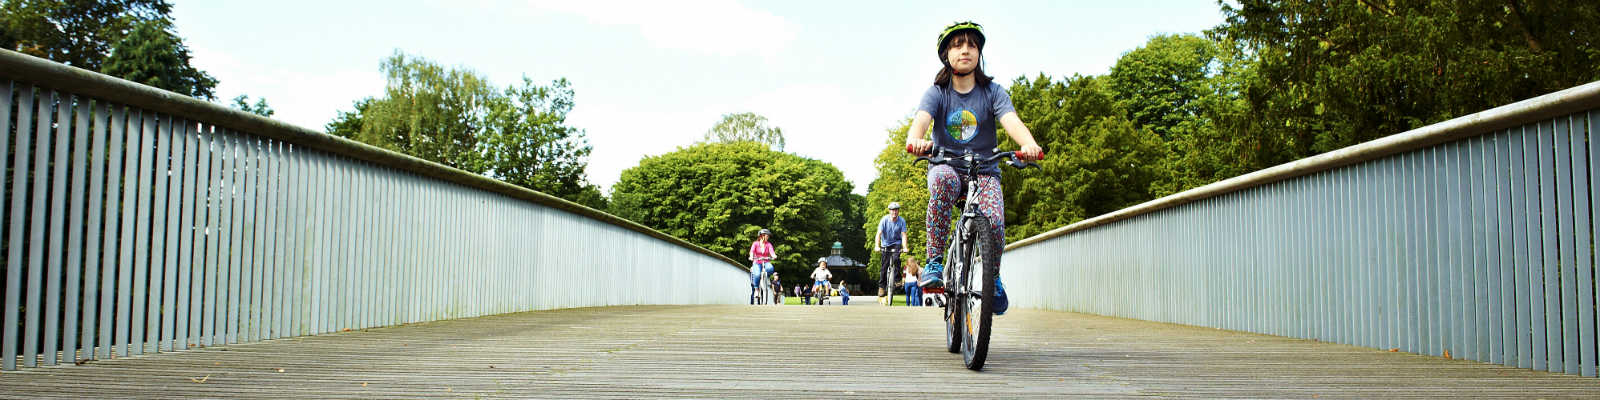 A young cyclist rides on a bridge in Crewe Park